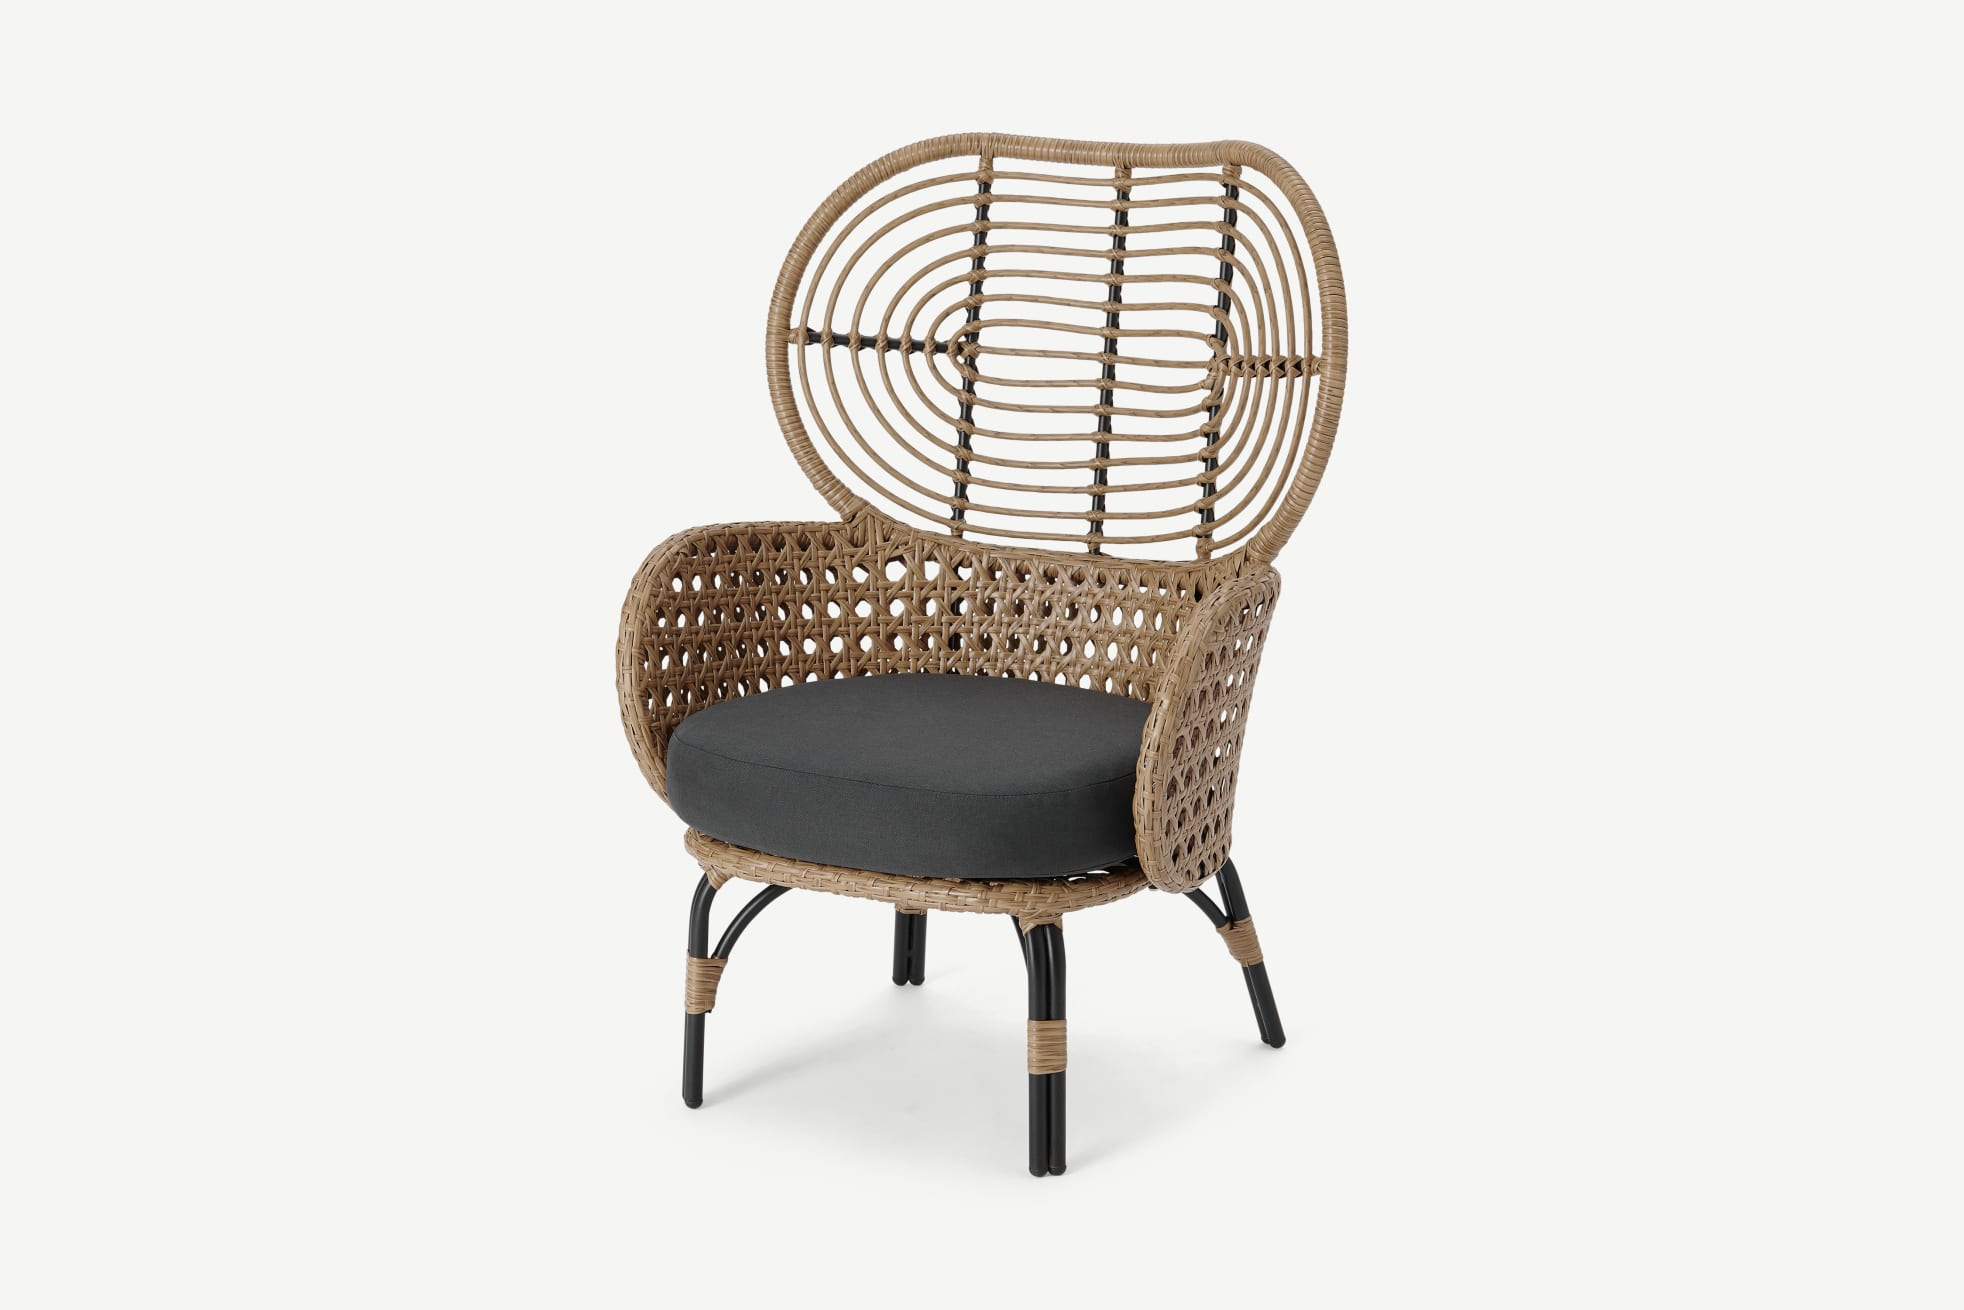 Statement high-backed modern outdoor chair. In faux rattan weave with charcoal grey seat cushion